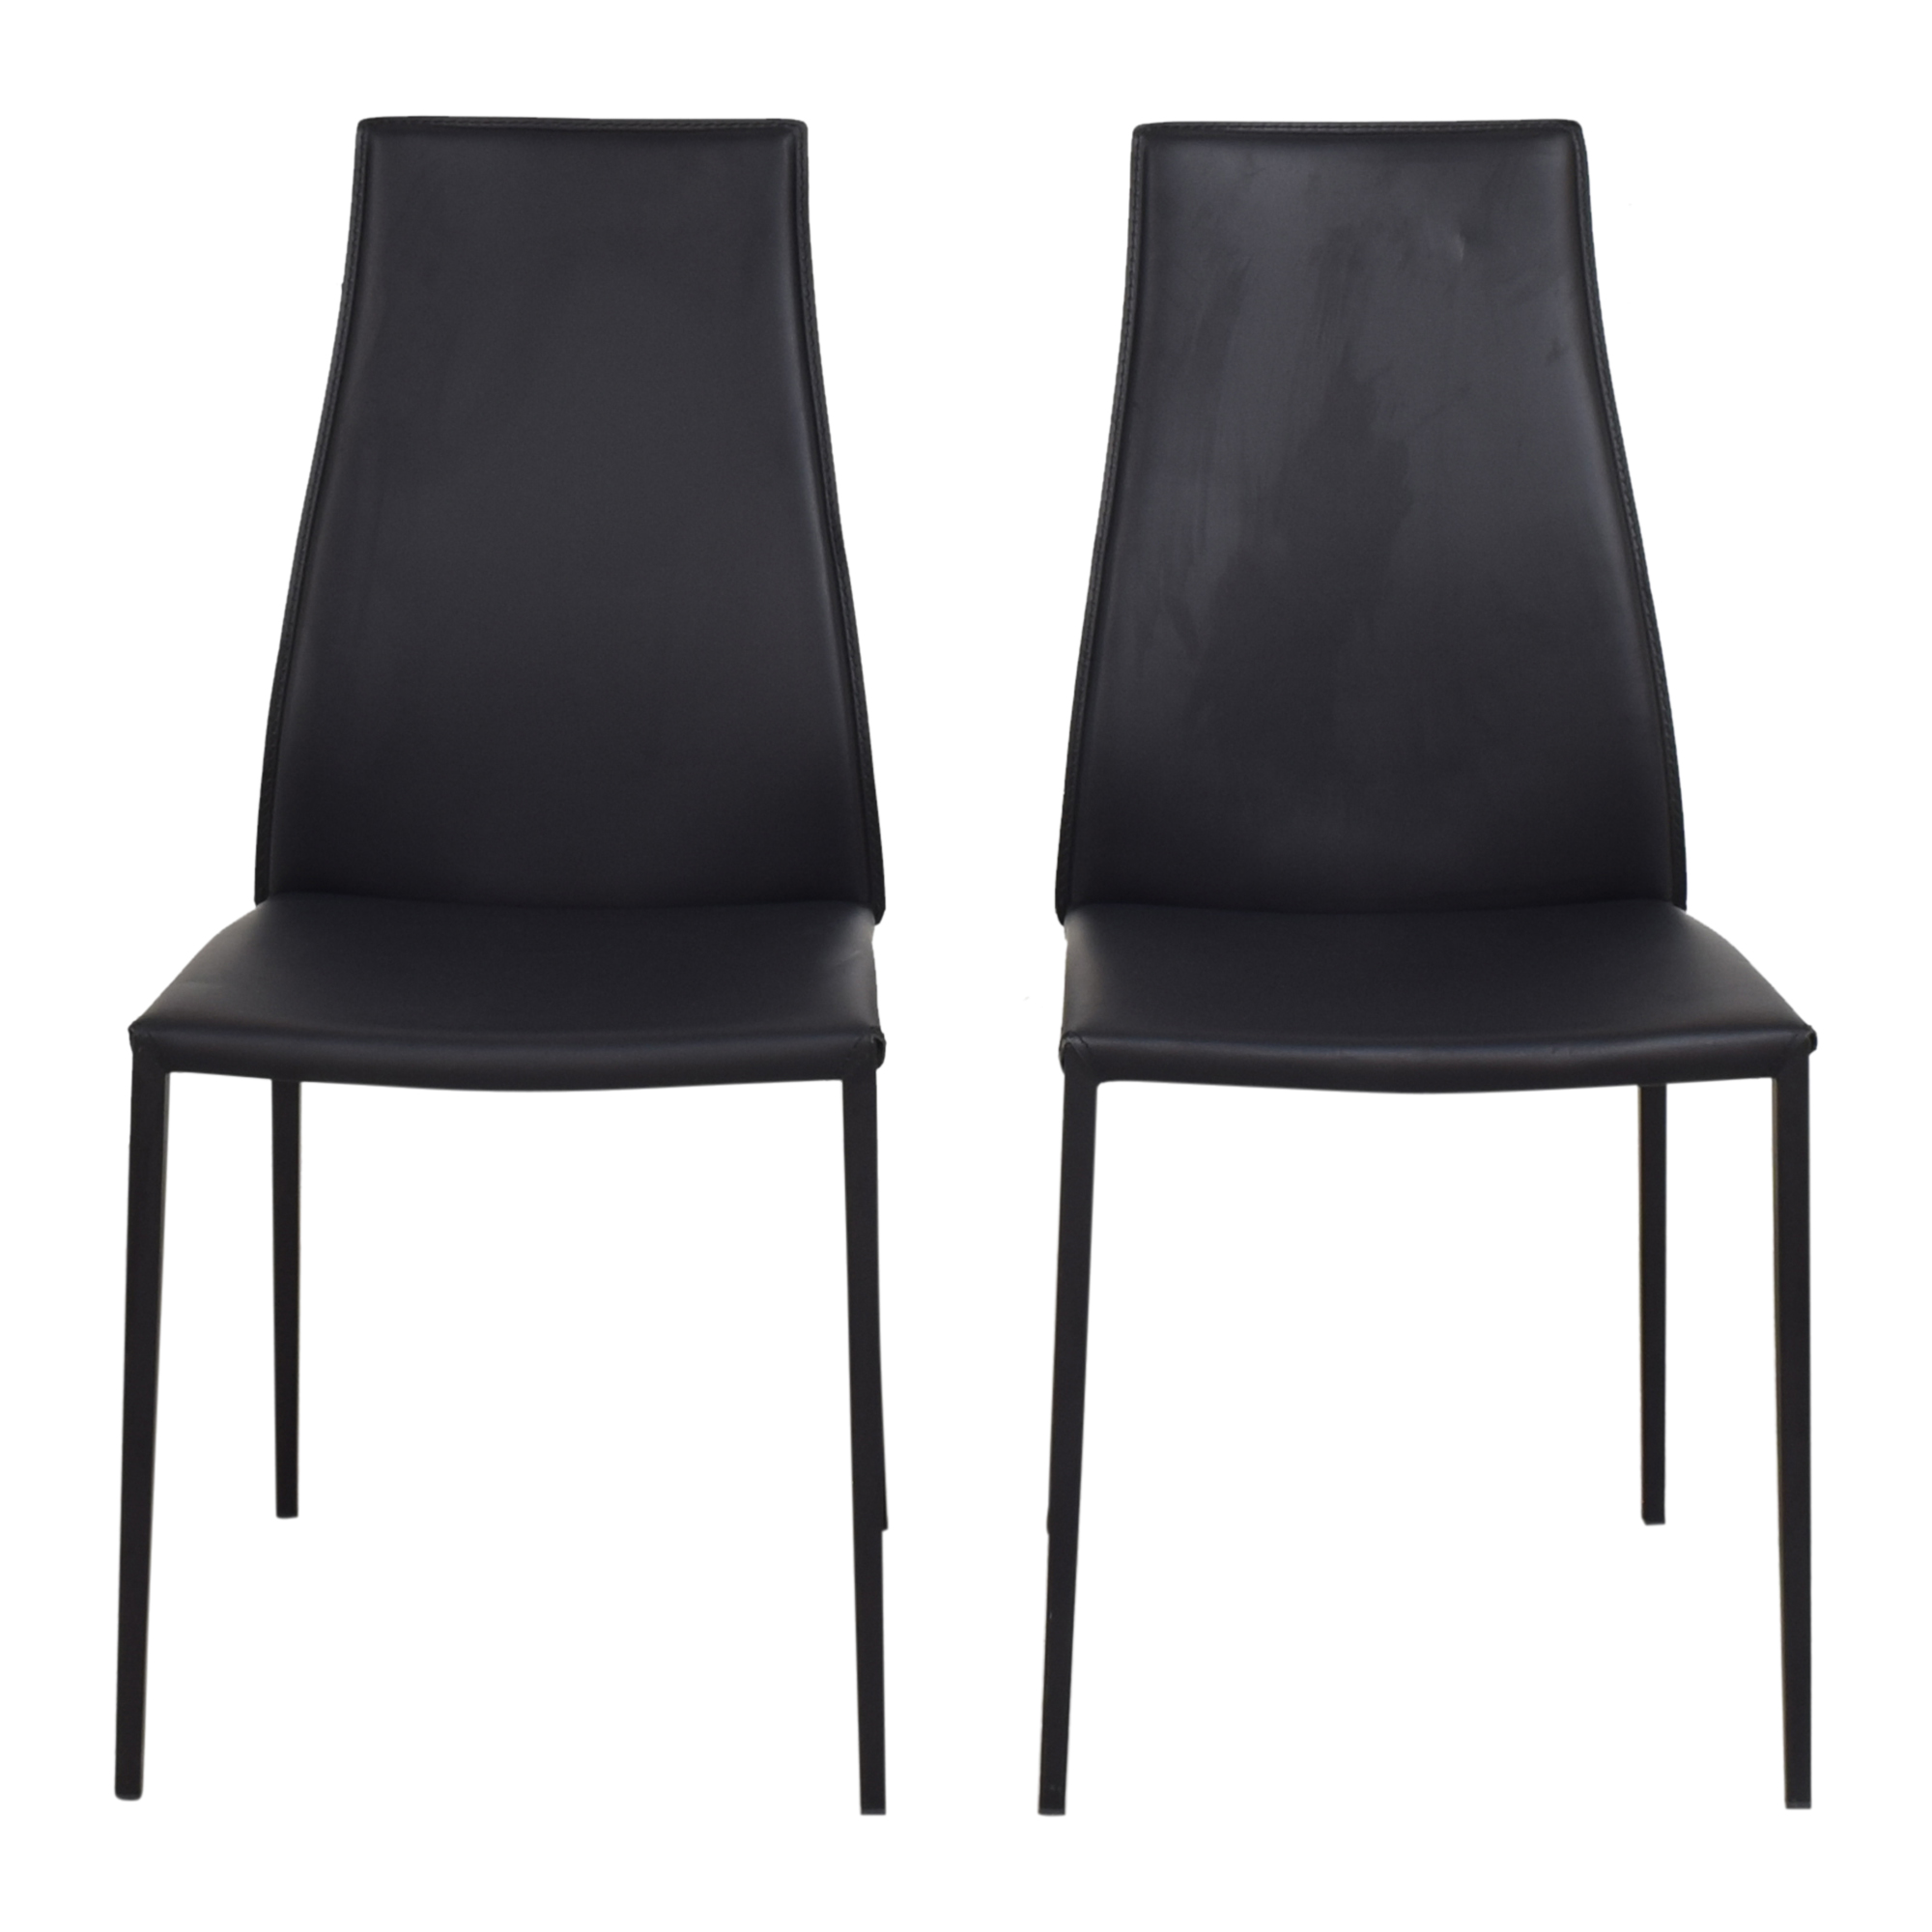 Calligaris Calligaris Aida Dining Chairs ct